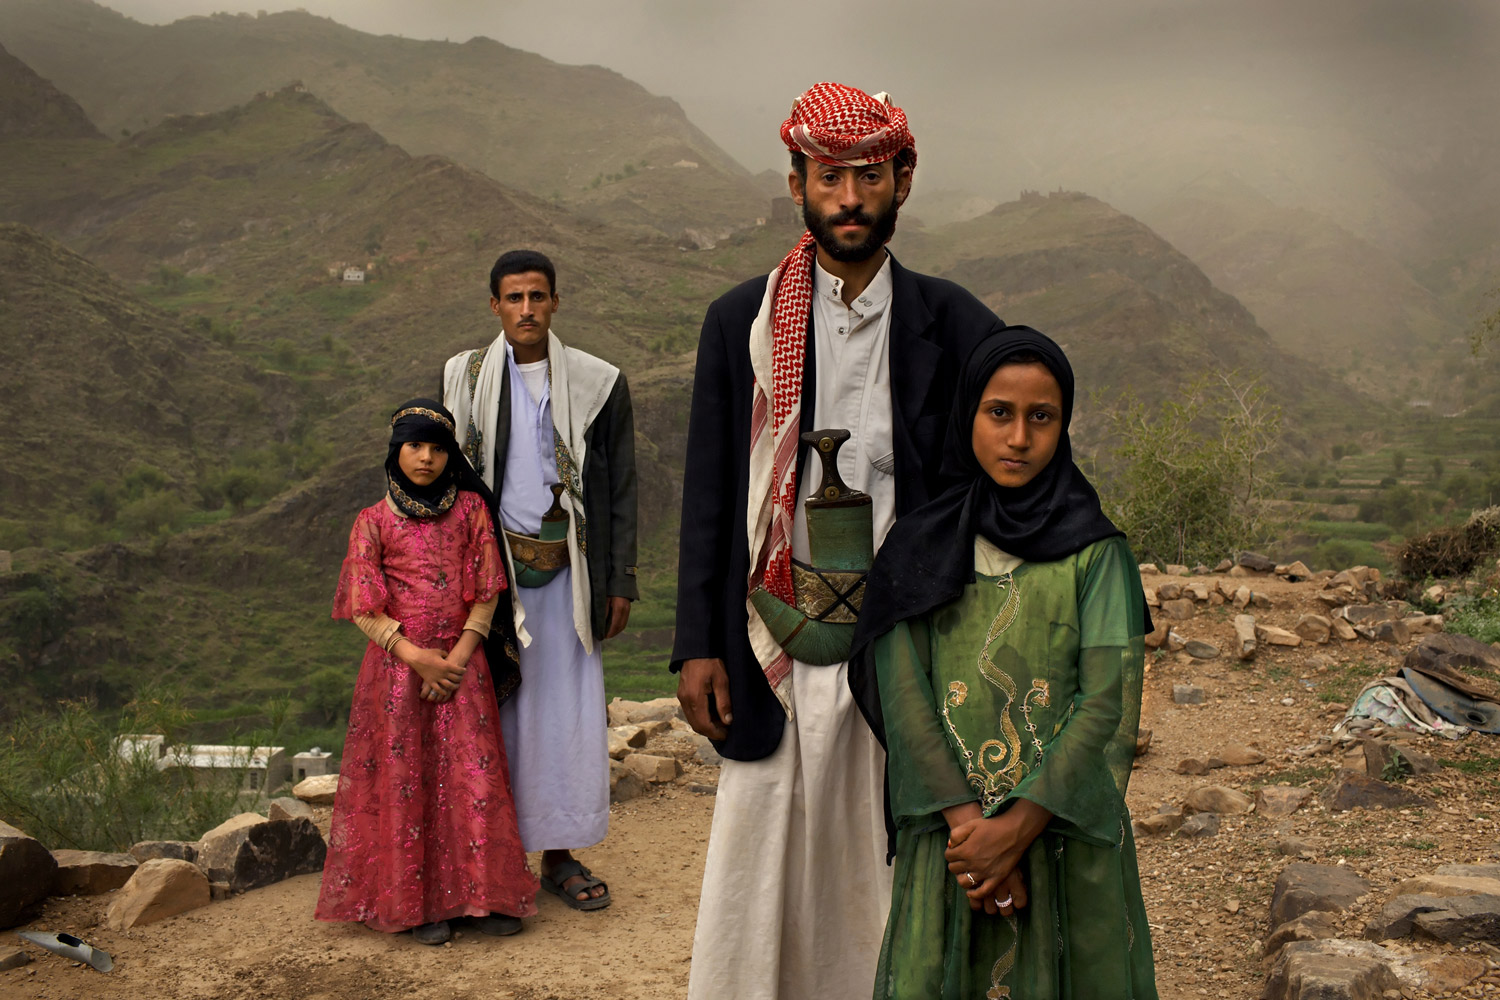 First Prize Contemporary Issues StoriesJune 10, 2010. Hajjah, Yemen. Tahani (in pink), who married her husband Majed when she was 6 and he was 25, poses for this portrait with former classmate Ghada, also a child bride, outside their mountain home in Hajjah. Nearly half of all women in Yemen were married as children. Child marriage is outlawed in many countries and international agreements forbid the practice yet this tradition still spans continents, language, religion and caste.